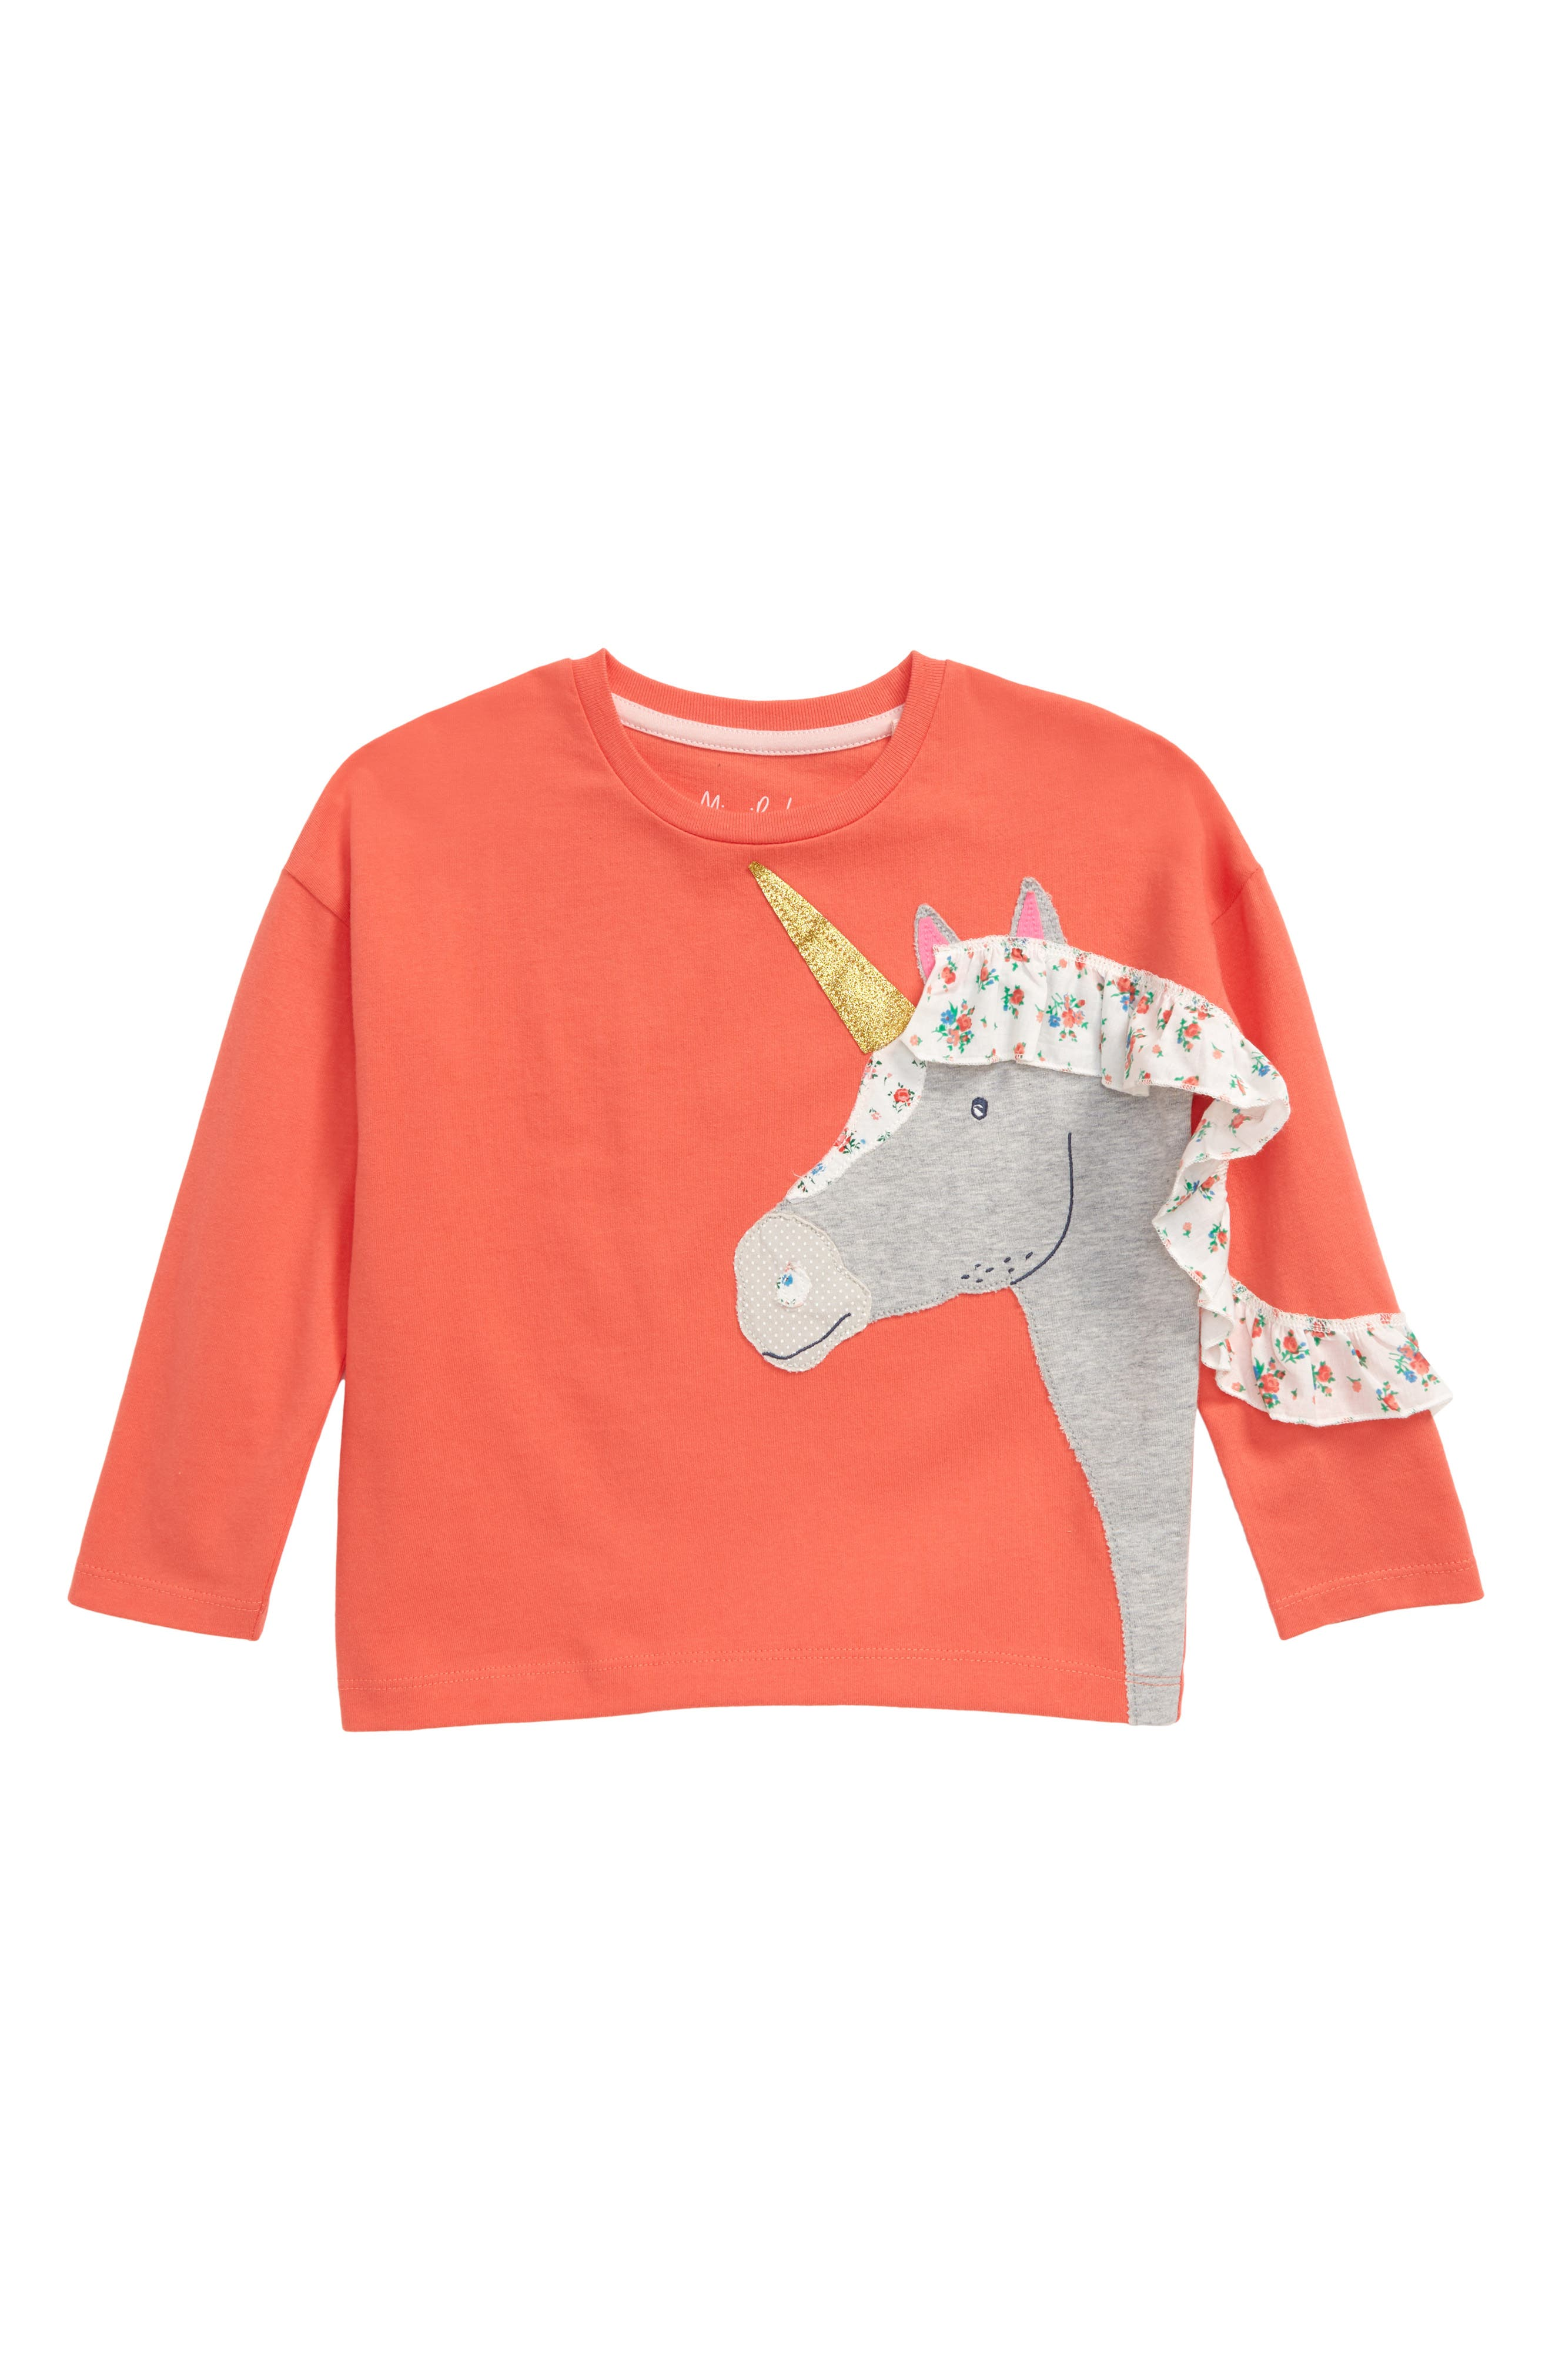 Calico flowers pattern the frilly mane running down the sleeve of a soft cotton T-shirt made with a smiling, glitter-horned unicorn on the front. Style Name: Mini Boden Frilly Unicorn Long Sleeve T-Shirt (Toddler, Little Girl & Big Girl). Style Number: 5989921. Available in stores.